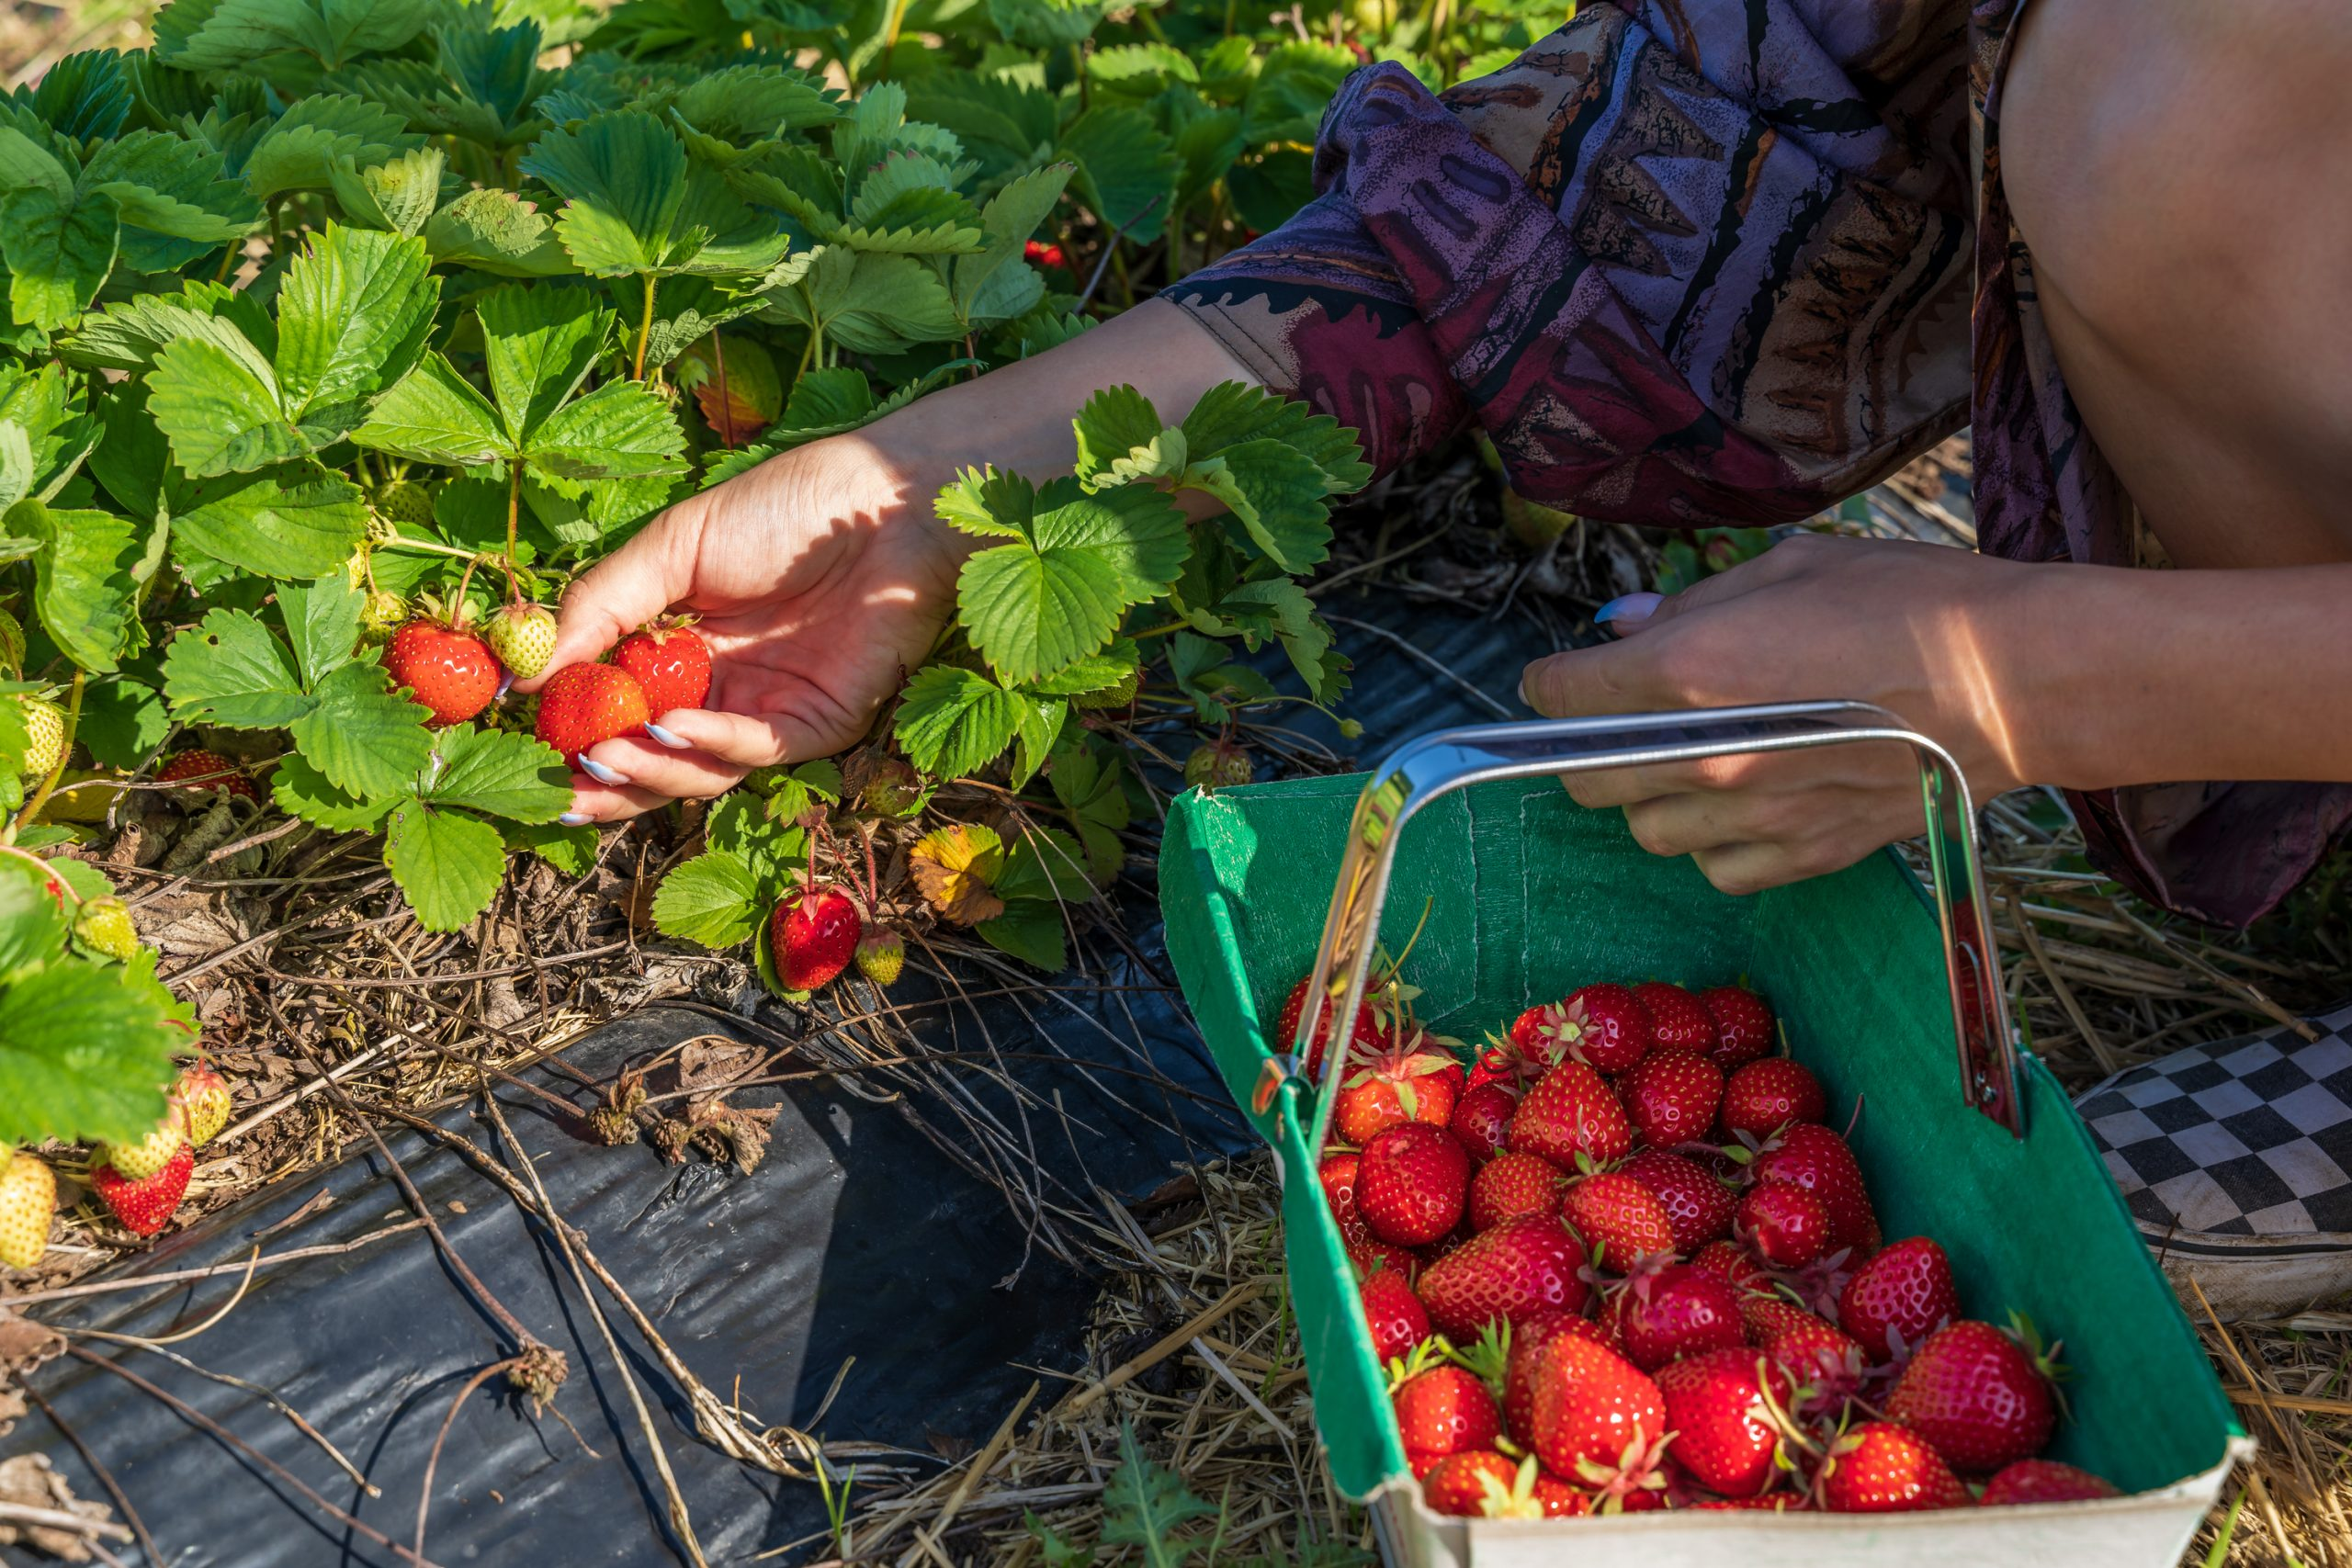 Pick ripe strawberries to encourage new growth